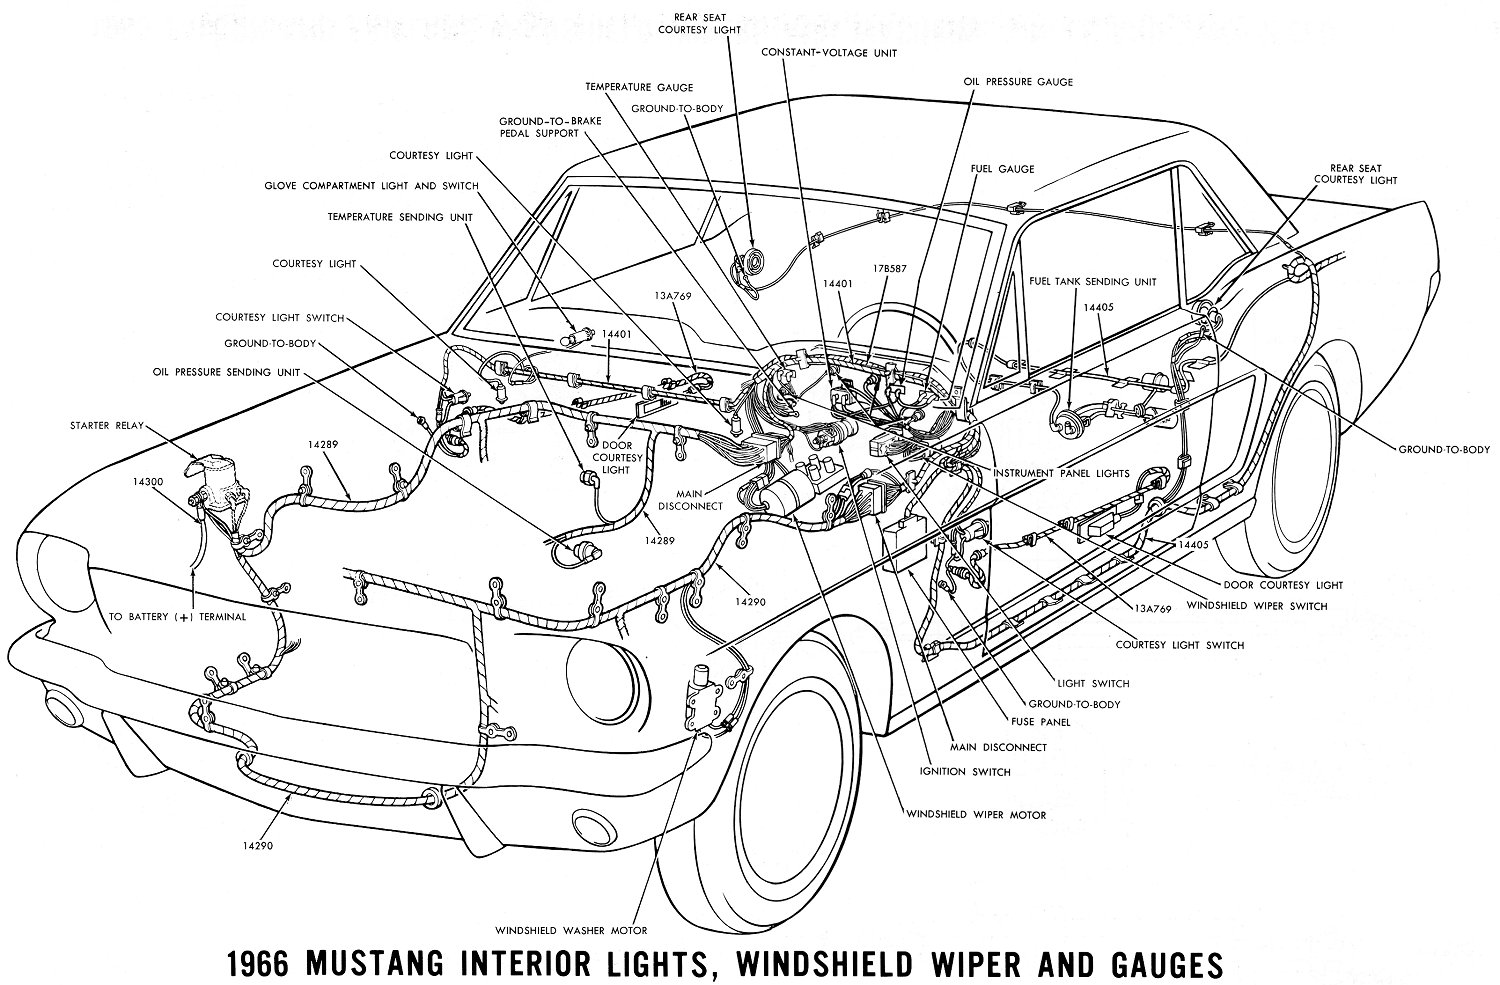 1966 mustang wiring diagrams - average joe restoration 1964 ford mustang wiring diagram schematic 66 mustang wiring diagram schematic #15